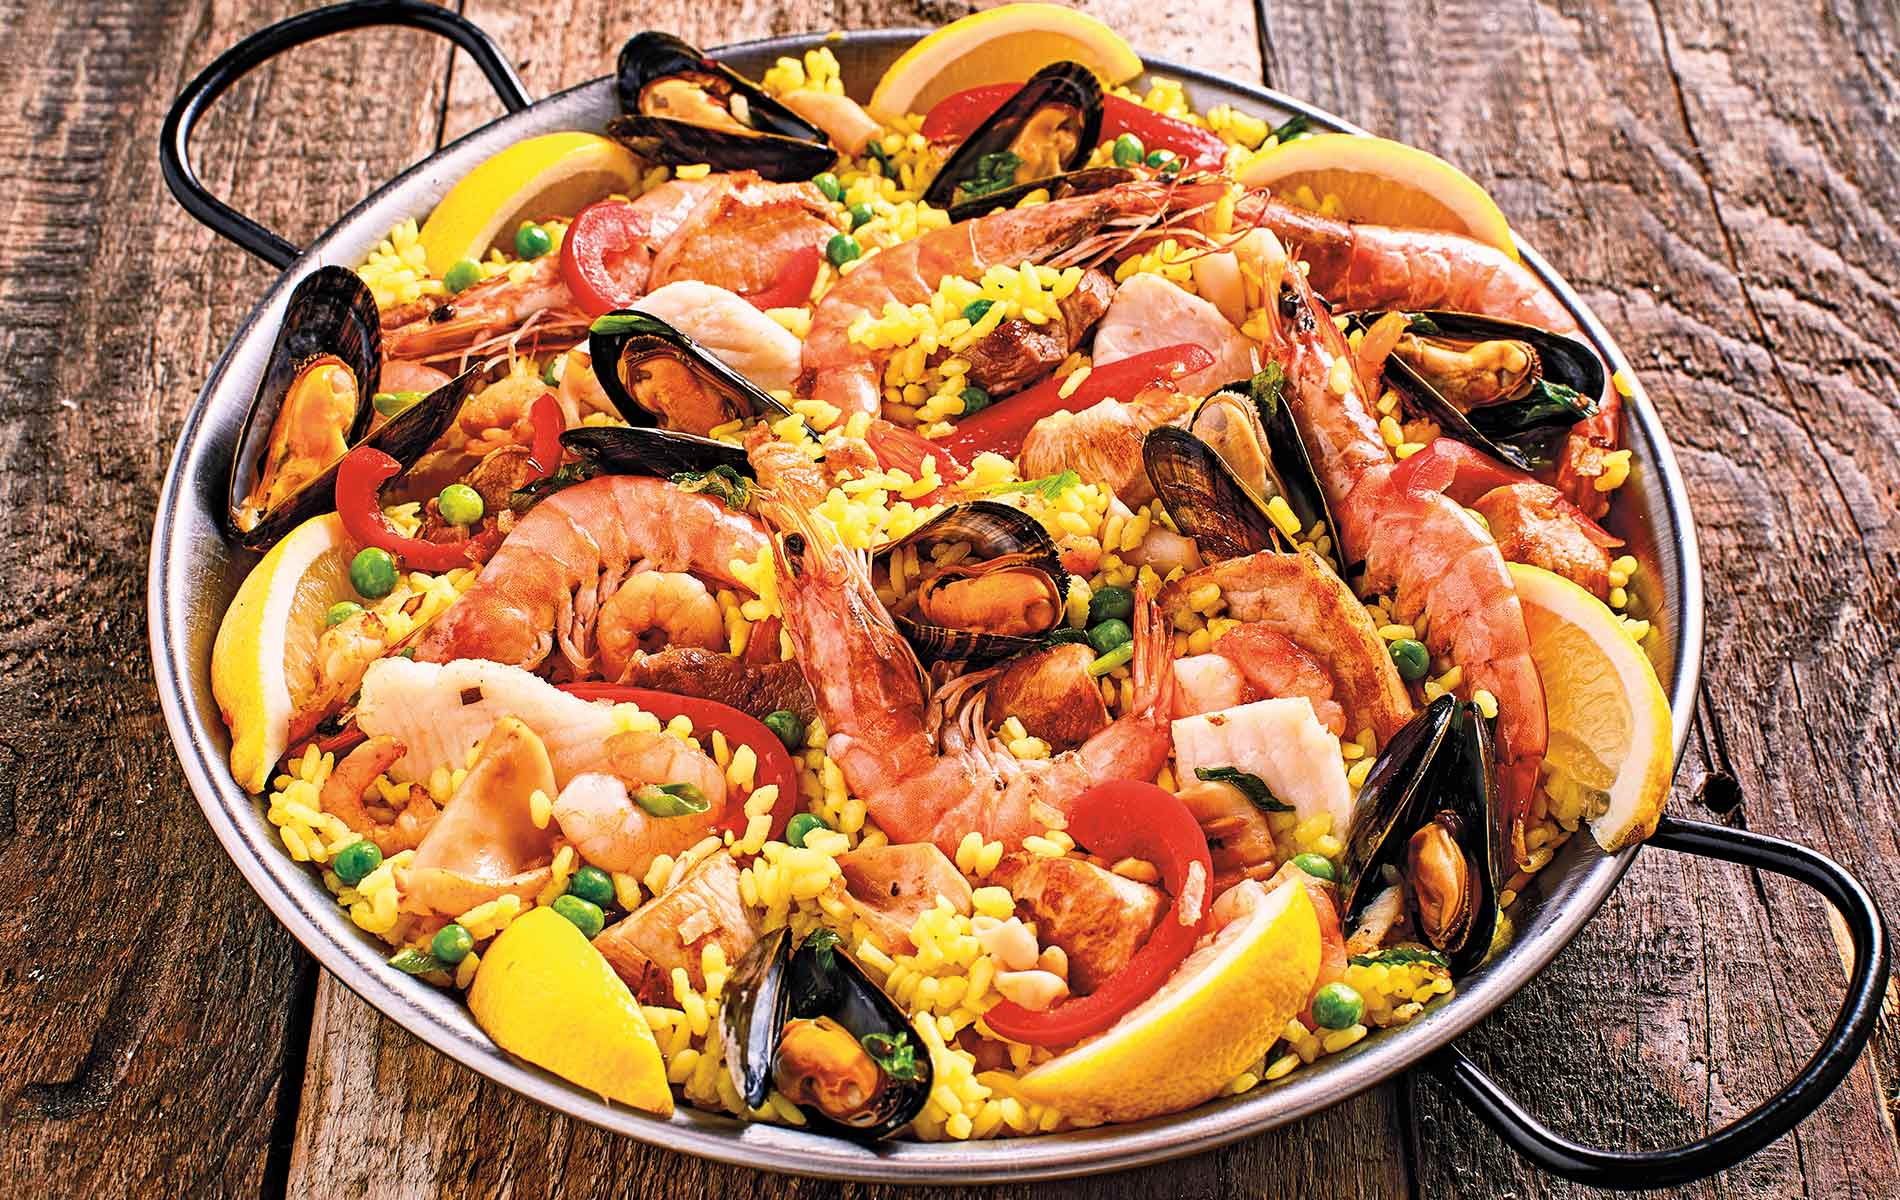 Colleen Sachs homemade family recipe for Seafood Paella